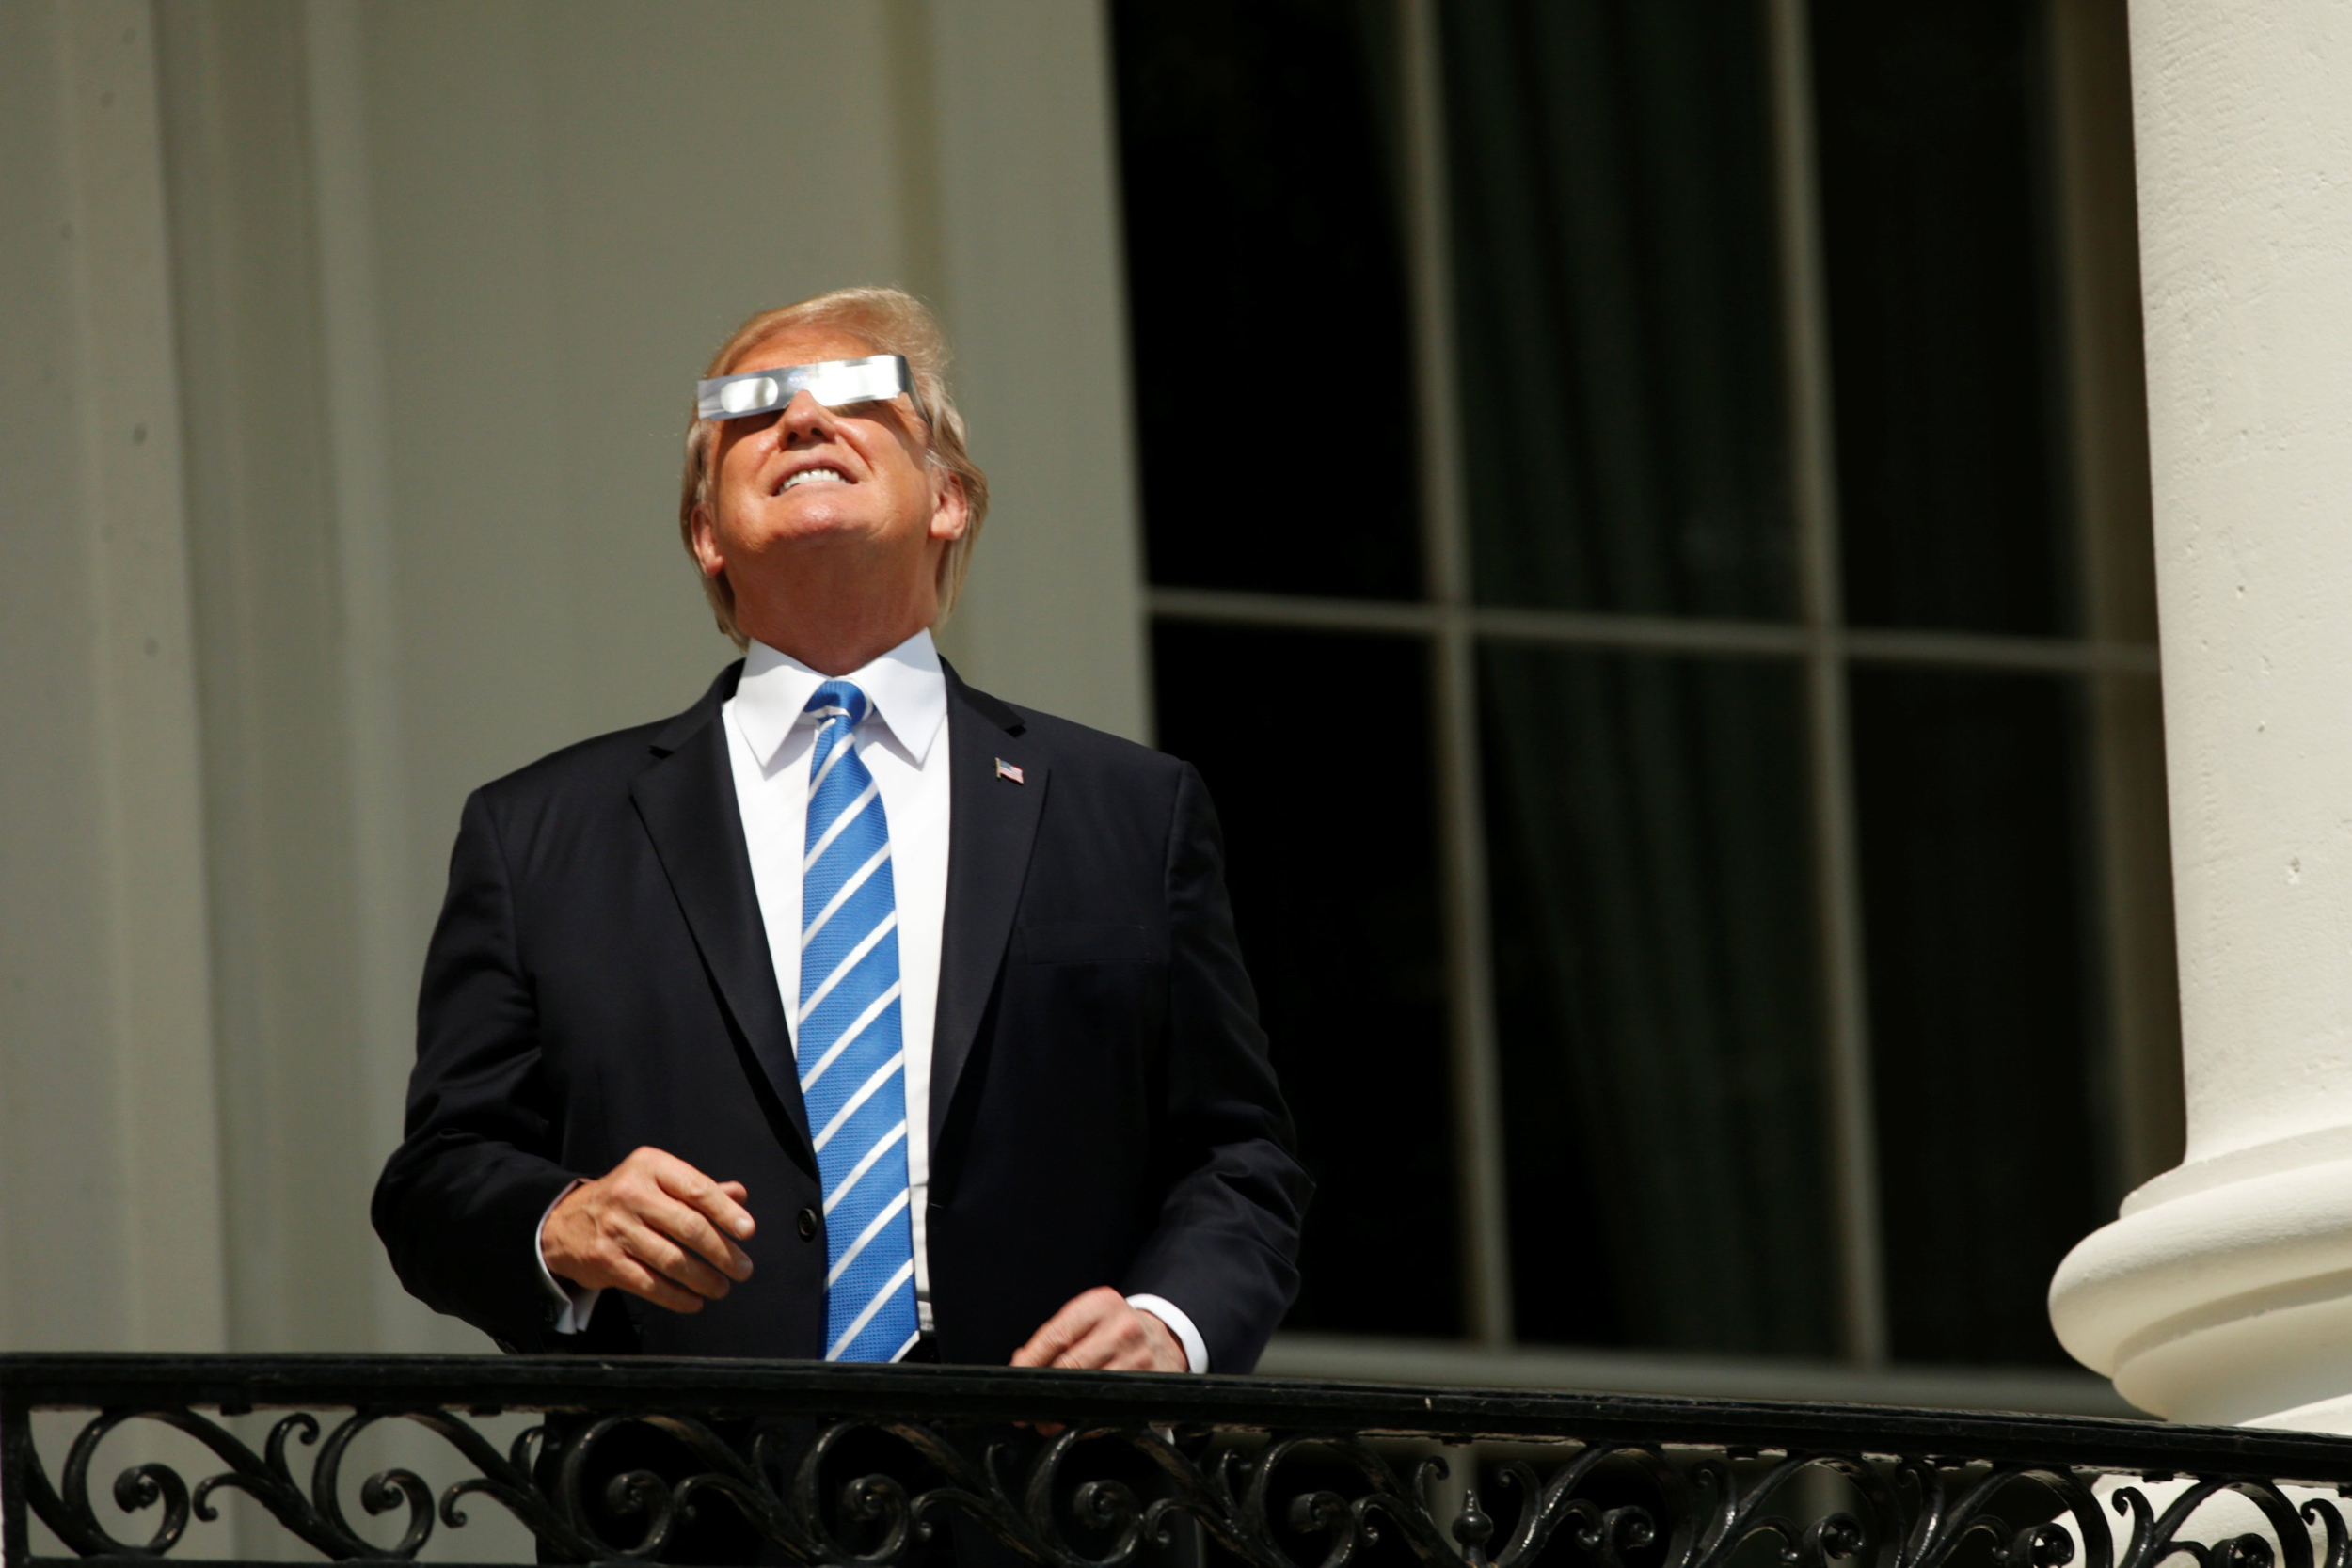 170824 trump eclipse white house njs 1040a_db45dfb9c1f805f1e1476a99a7ece7a3 trump retweets meme of himself 'eclipsing' obama in twitter frenzy